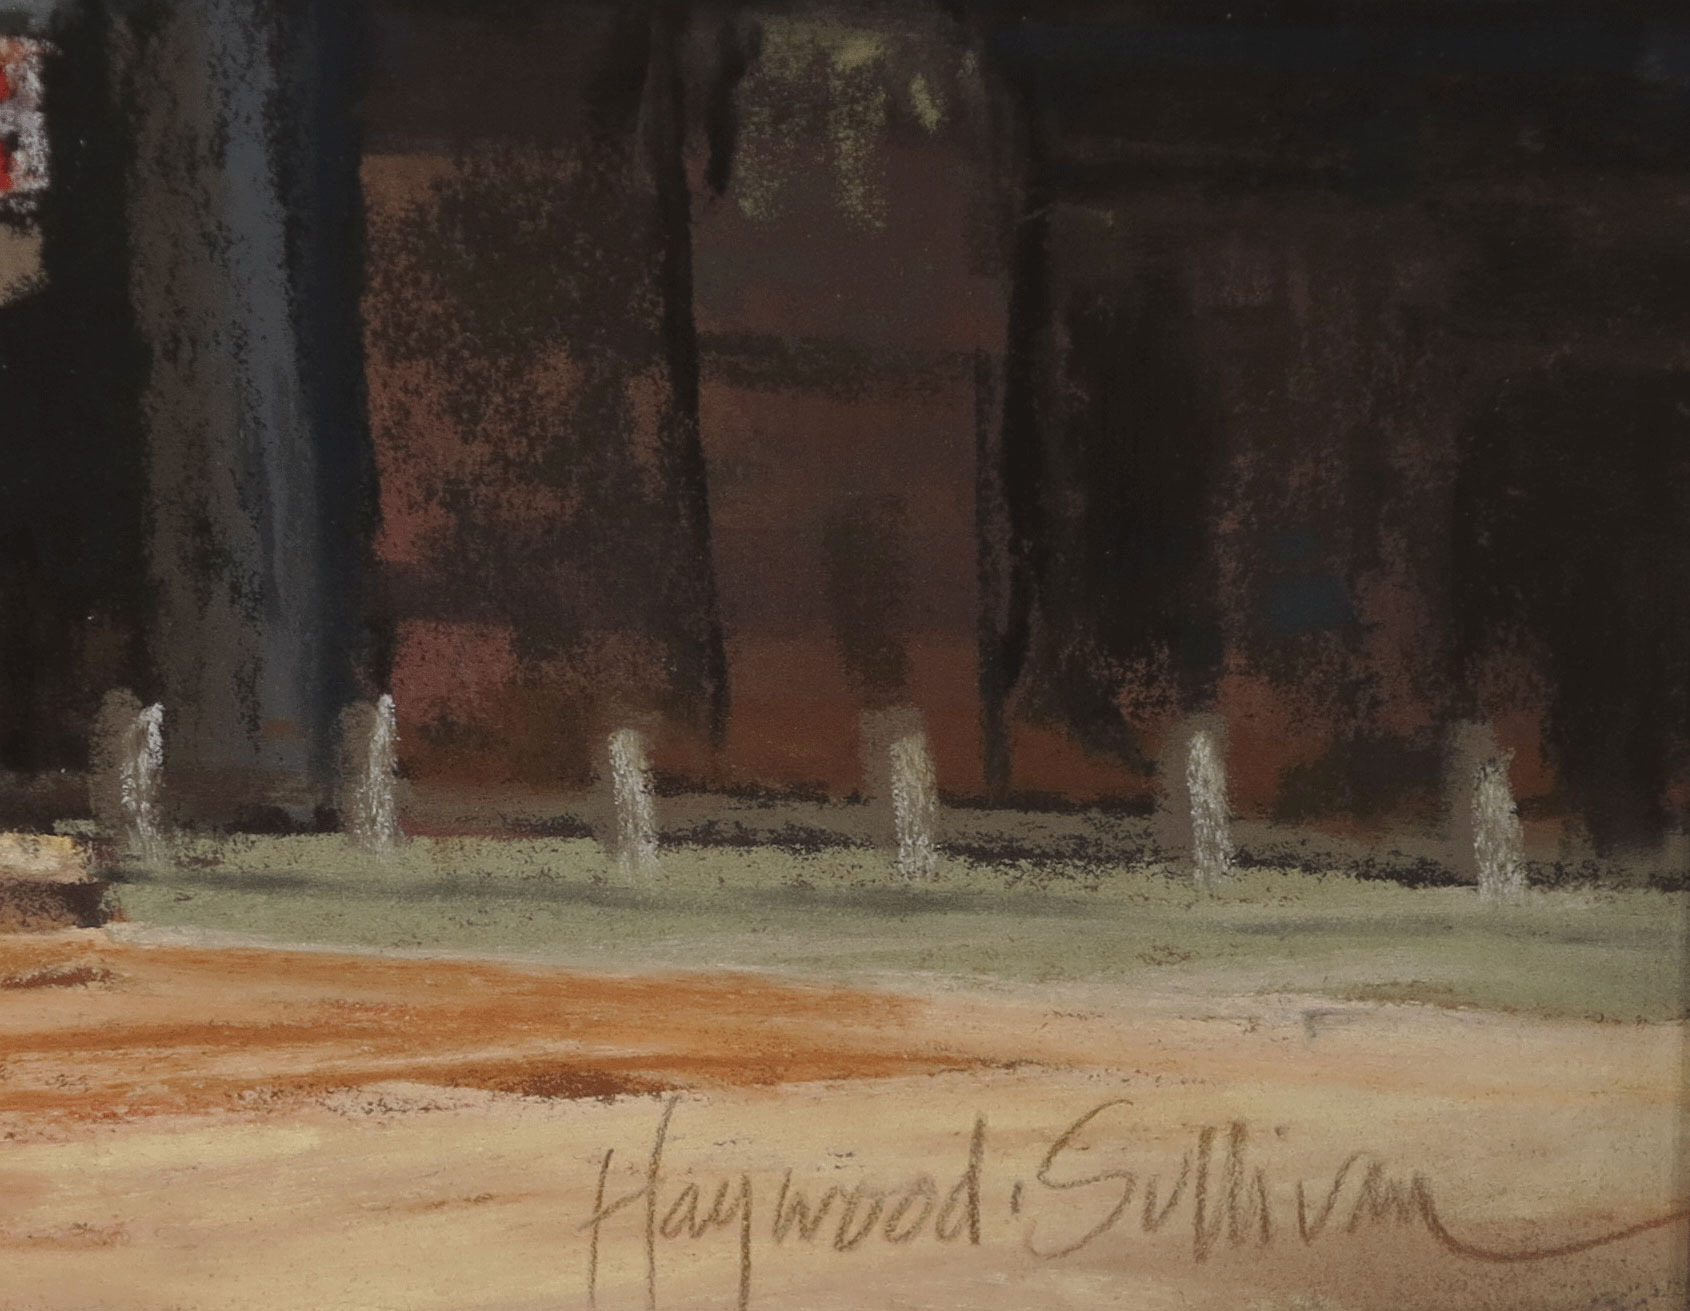 Haywood sullivan 36008 detail 2